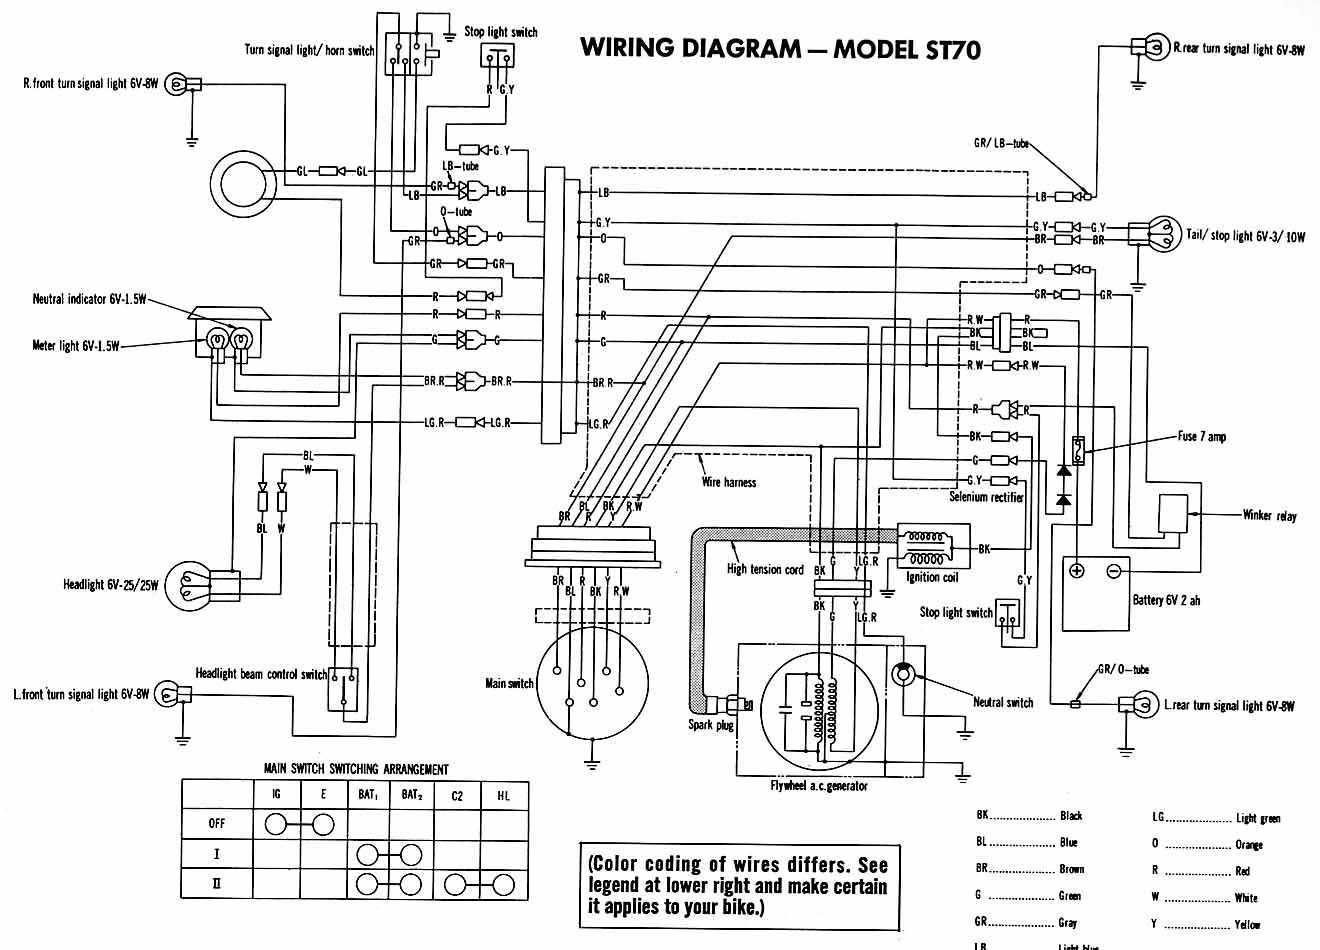 Honda Helix Wiring Diagram Nest 5 Wire Gx390 - Fuse Box